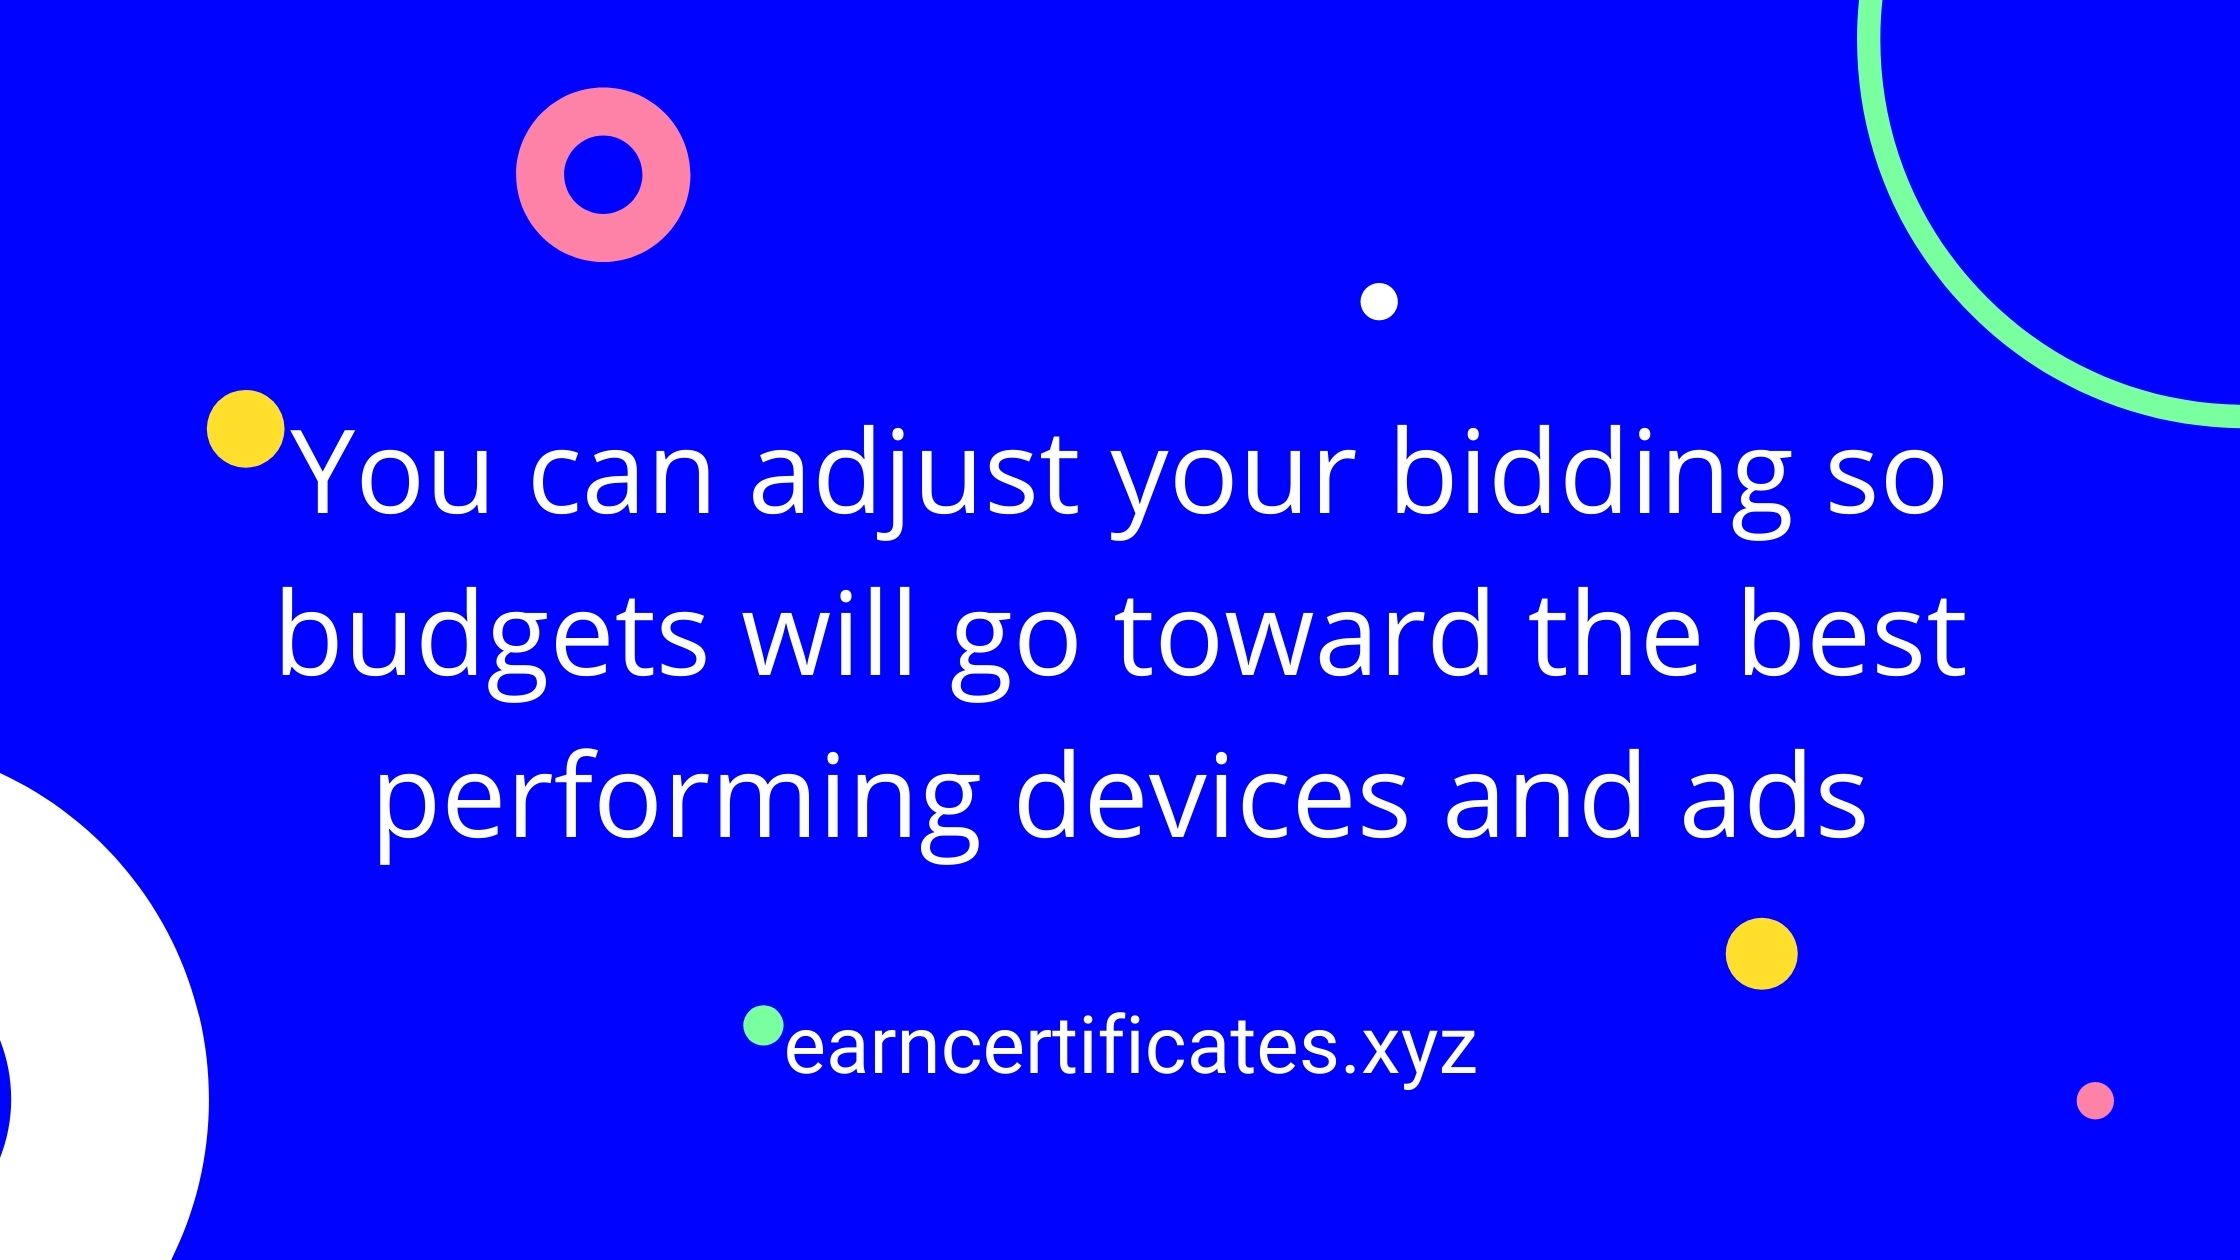 You can adjust your bidding so budgets will go toward the best performing devices and ads